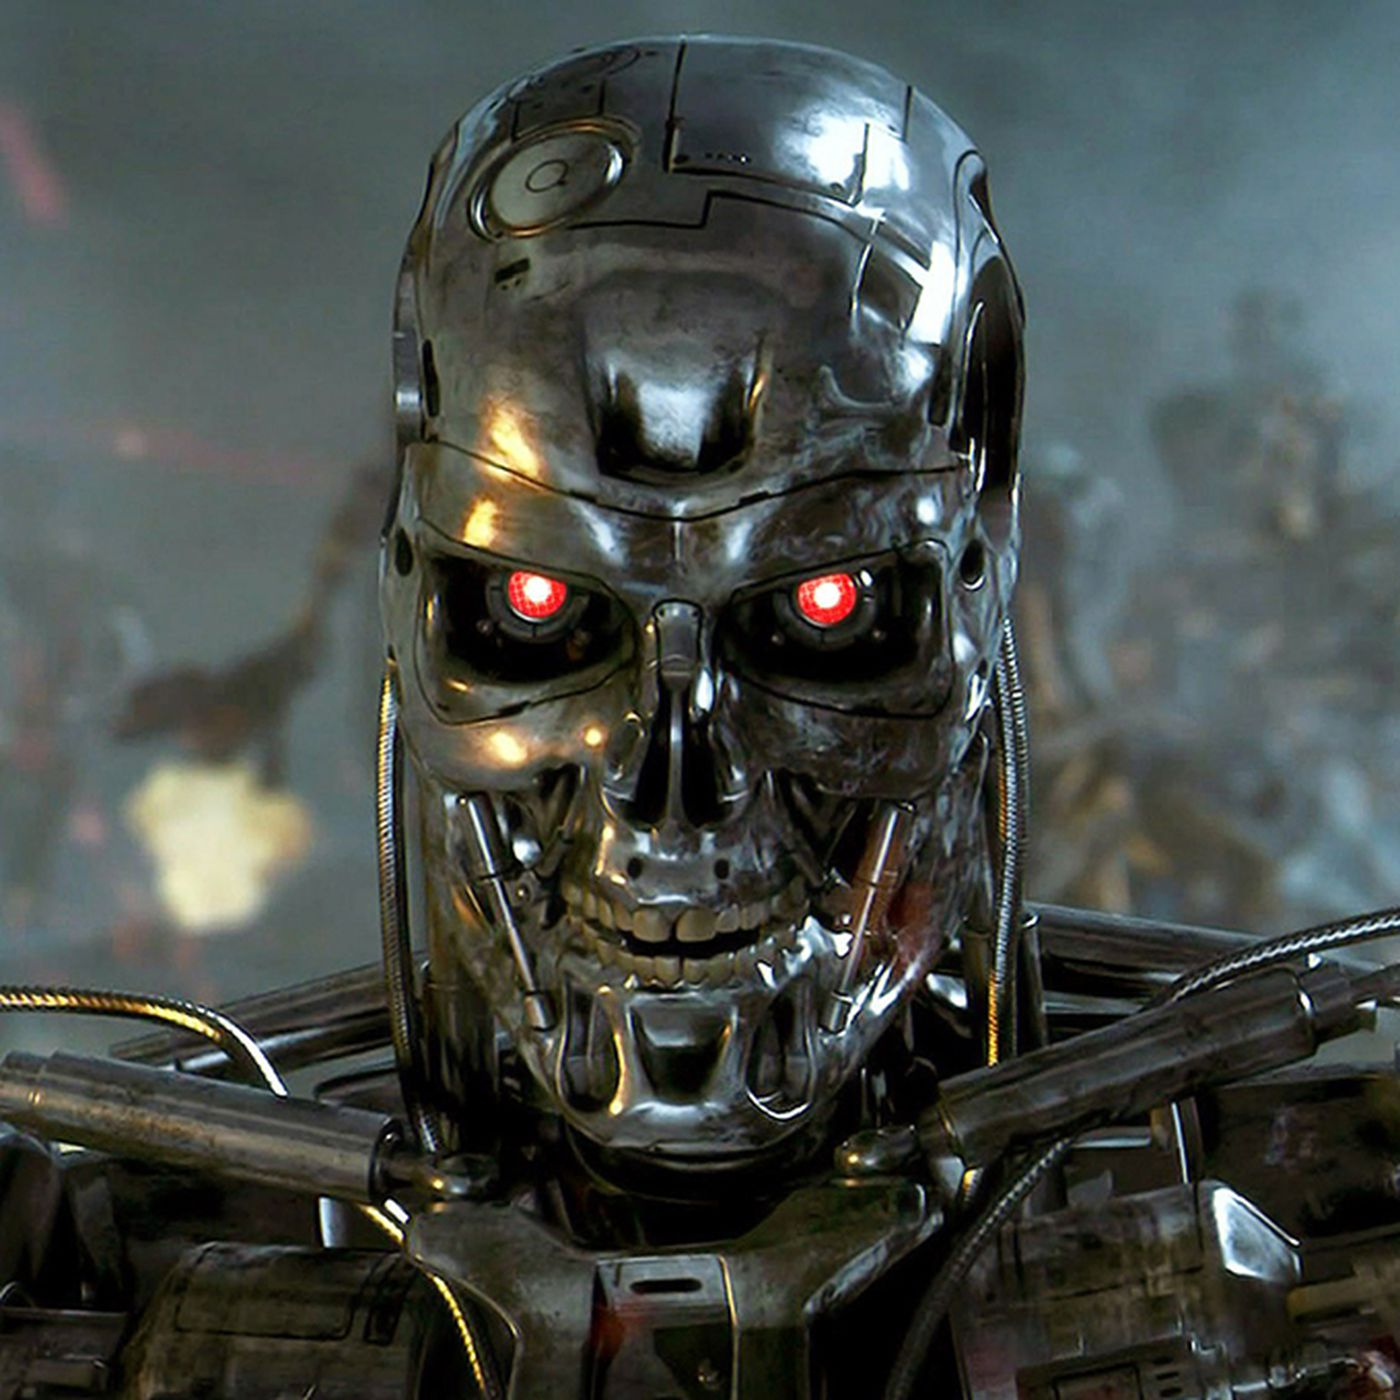 Terminator will return in 2019 with the help of James Cameron - The